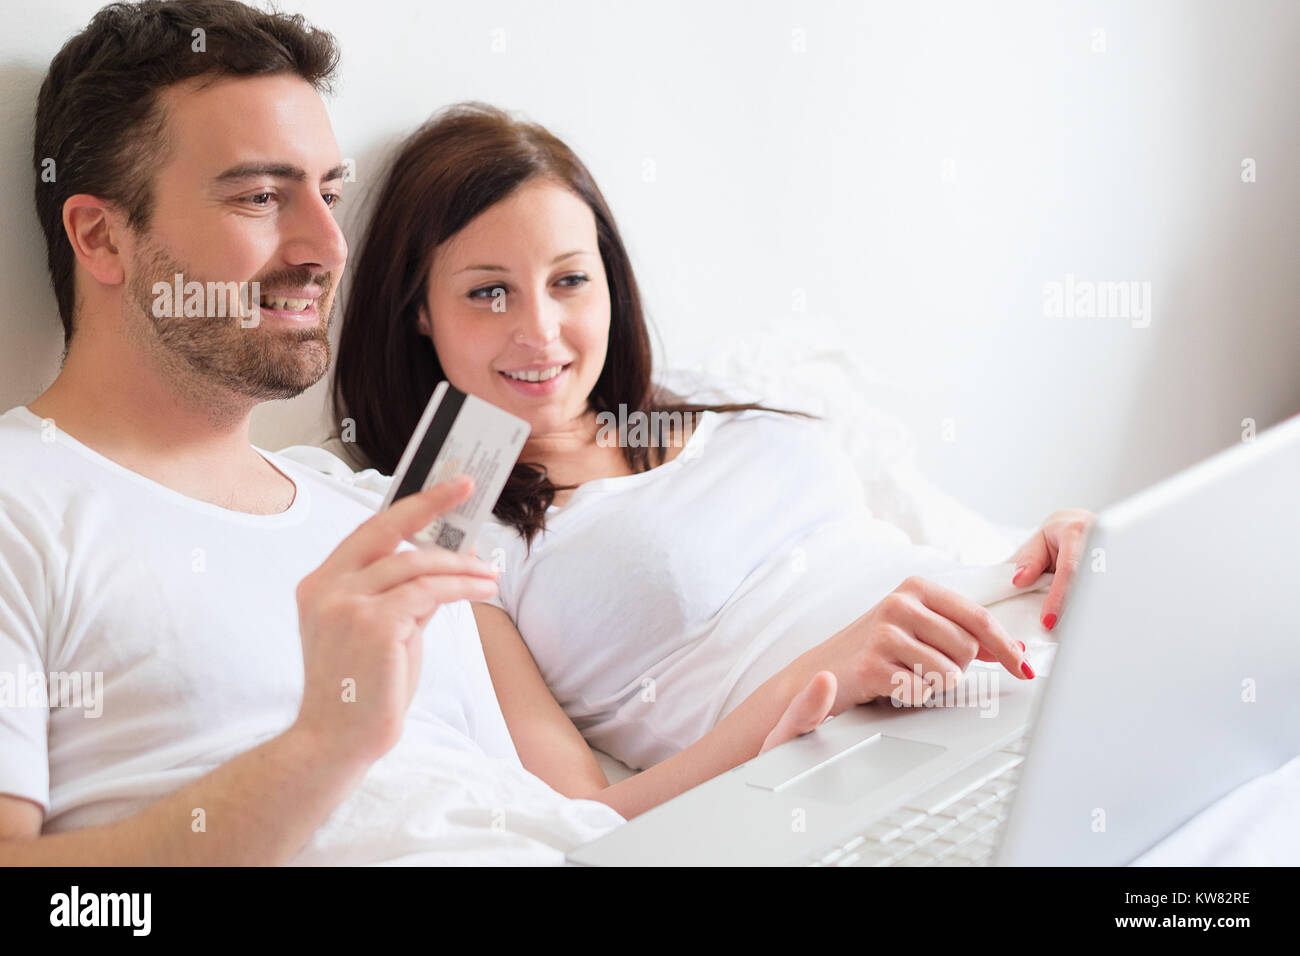 couple searching for girl